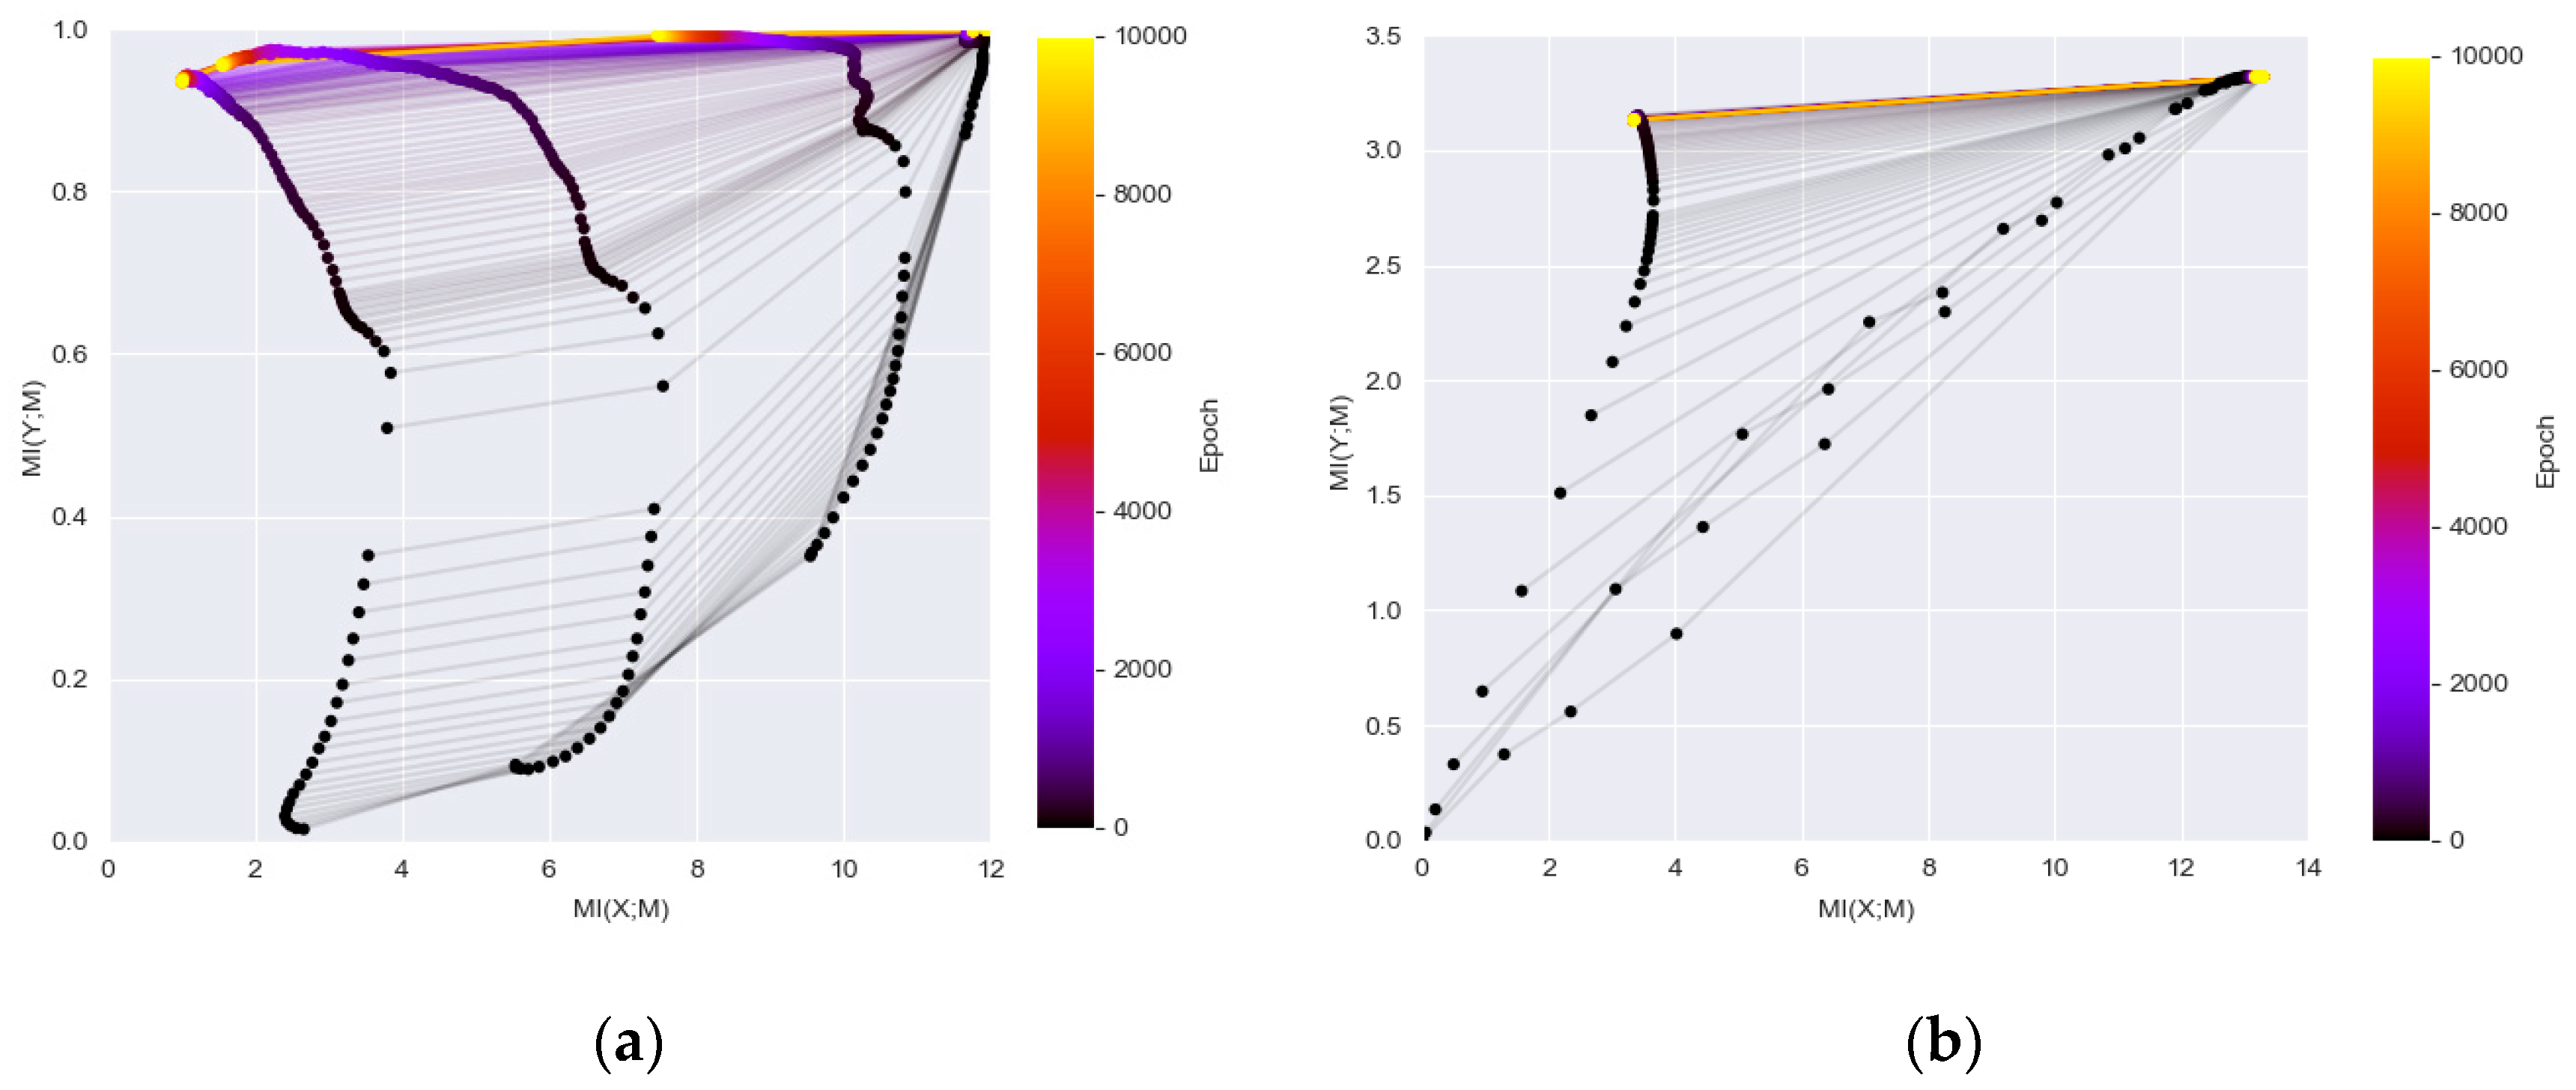 Entropy | Free Full-Text | Dissecting Deep Learning Networks